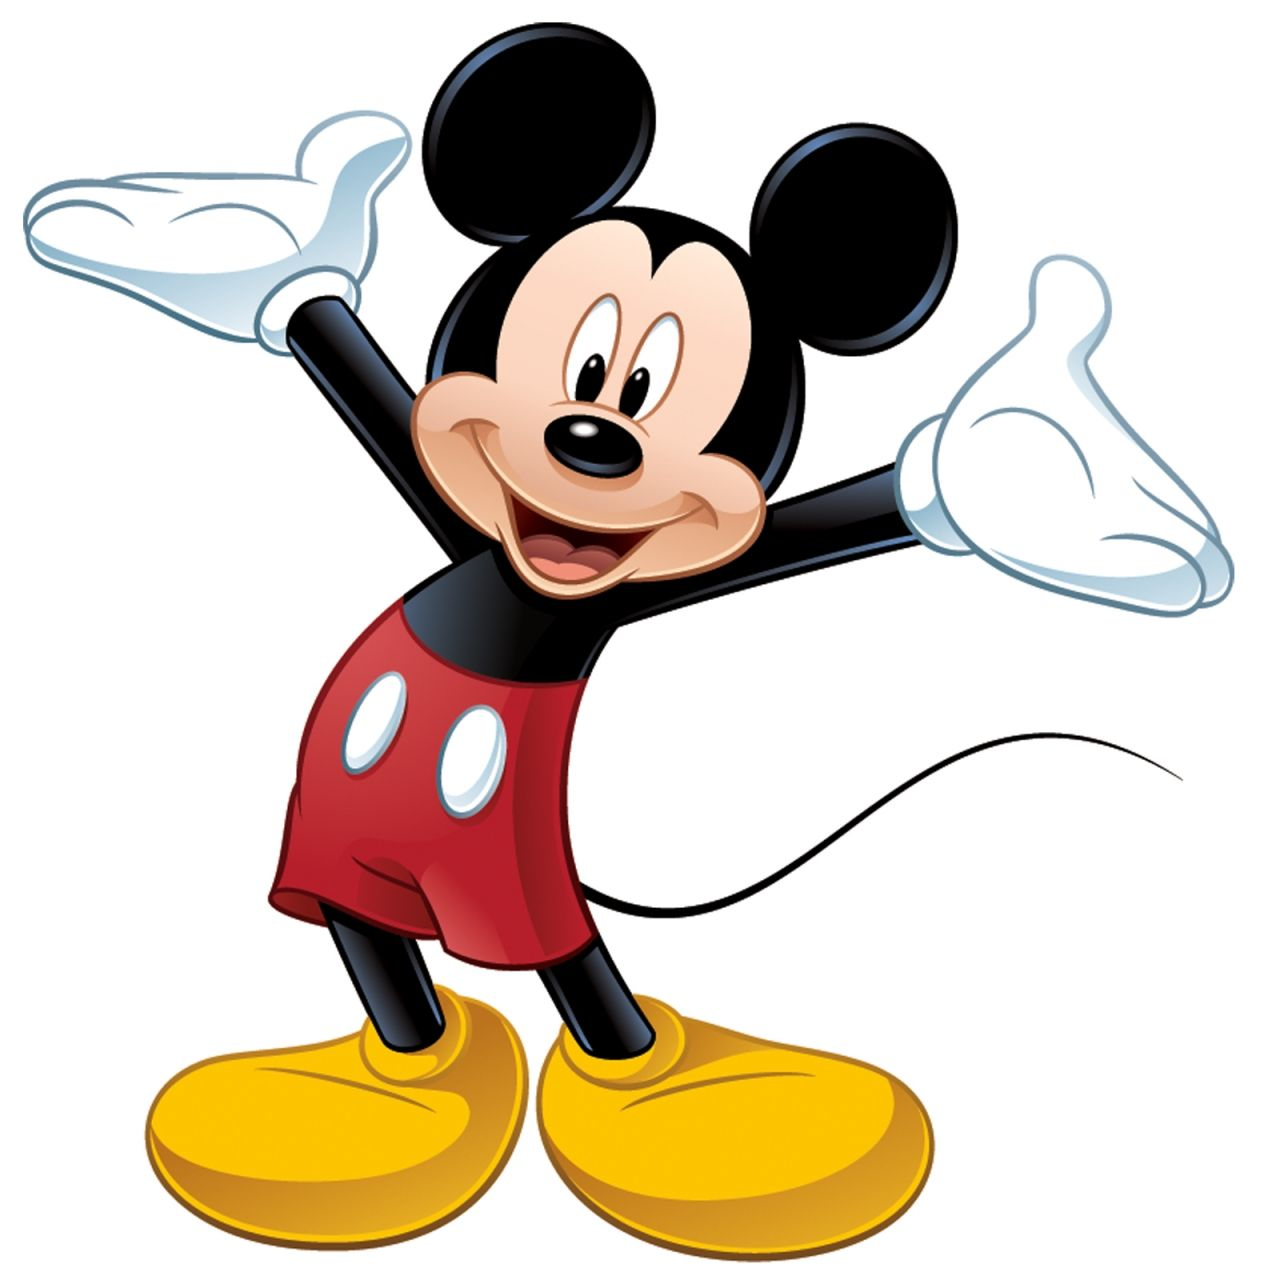 Mickey Mouse Cartoon Wallpapers Top Free Mickey Mouse Cartoon Backgrounds Wallpaperaccess